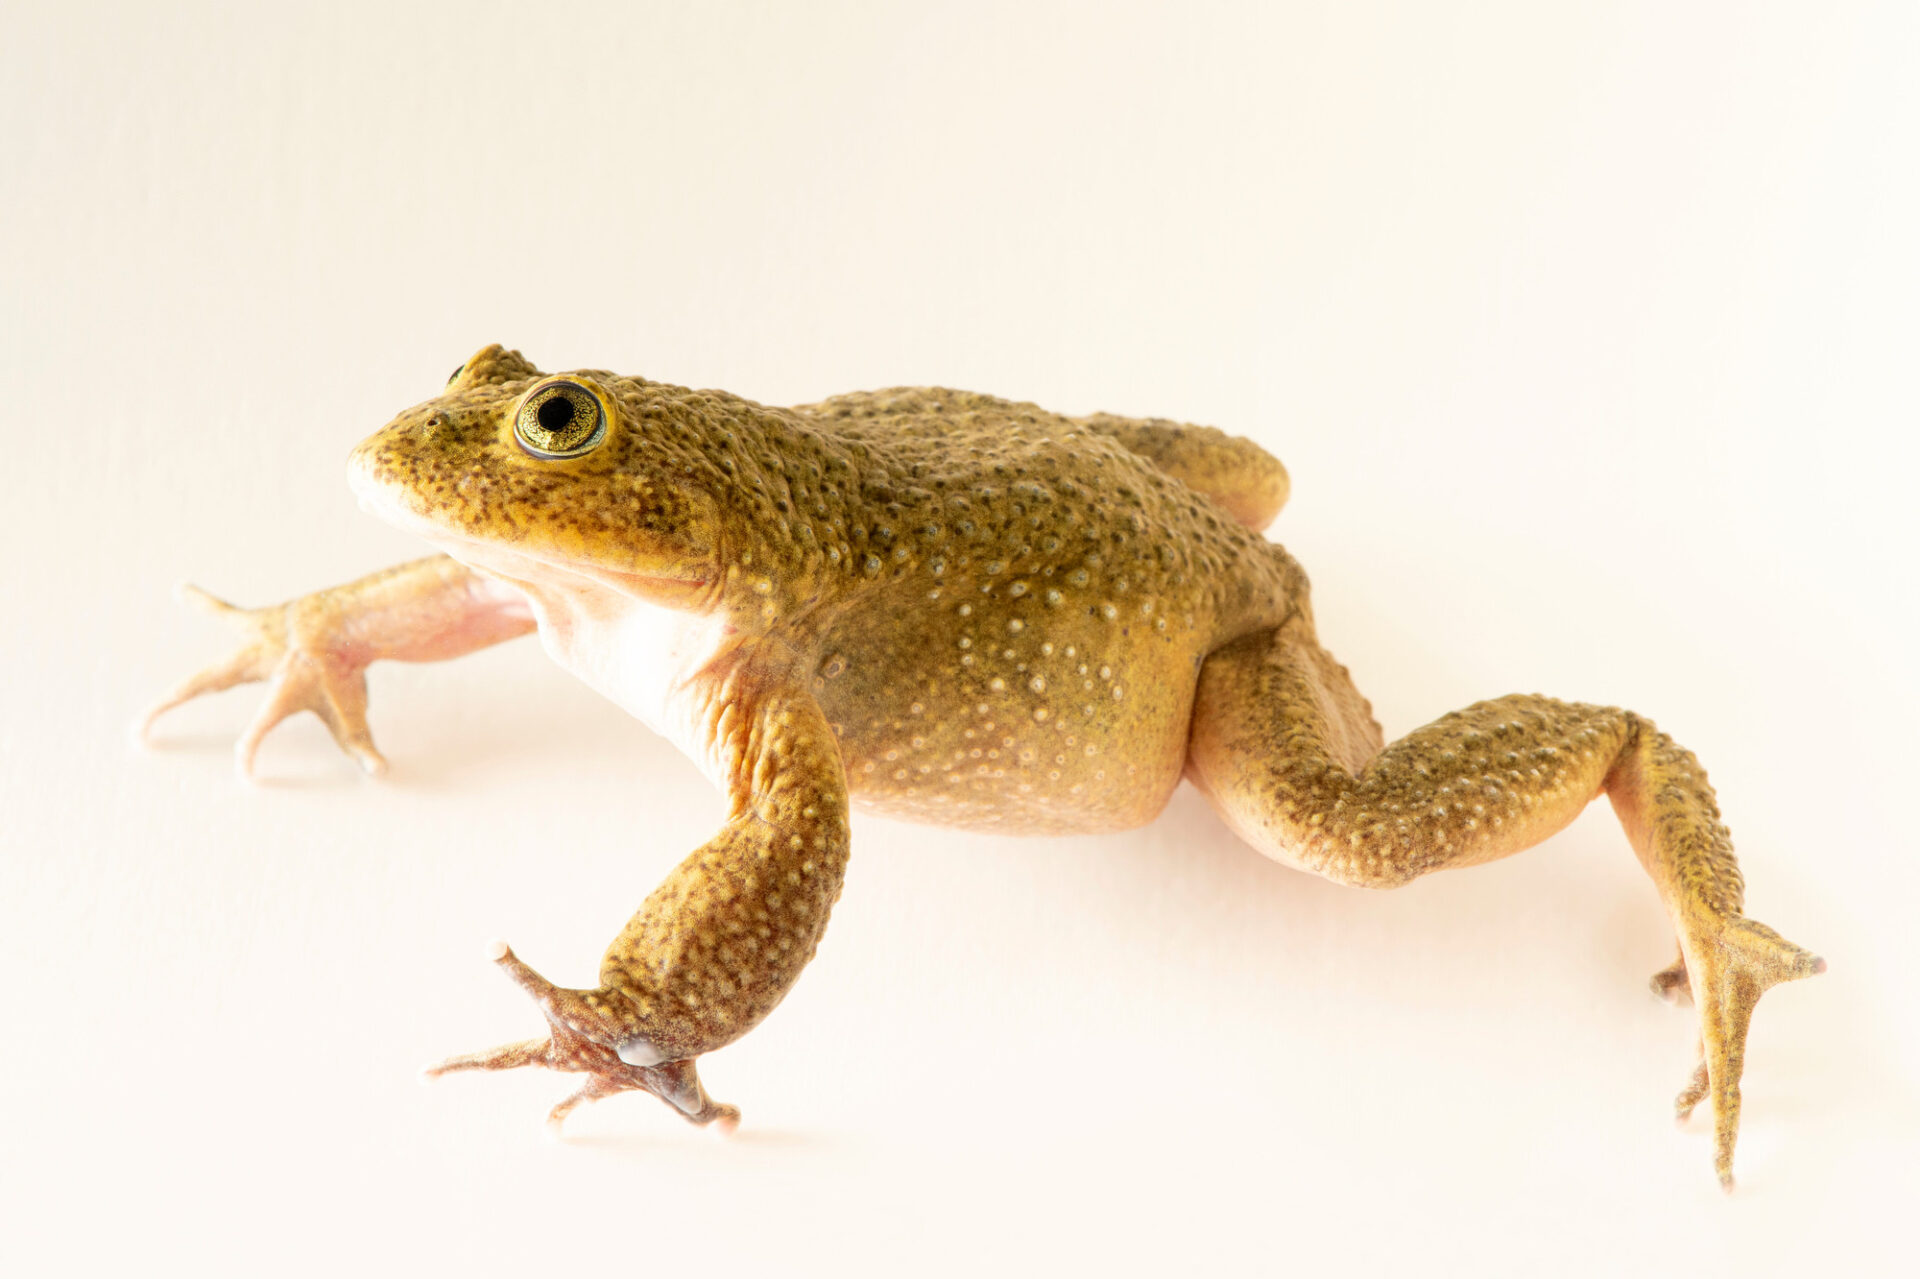 Photo: An undescribed Telmatobius sp., collected near Oruro, Bolivia, photographed at at Museo De Historia Natural Alcide d'Orbigny, a natural history museum and rare amphibian breeding center in Chocabamba Bolivia.